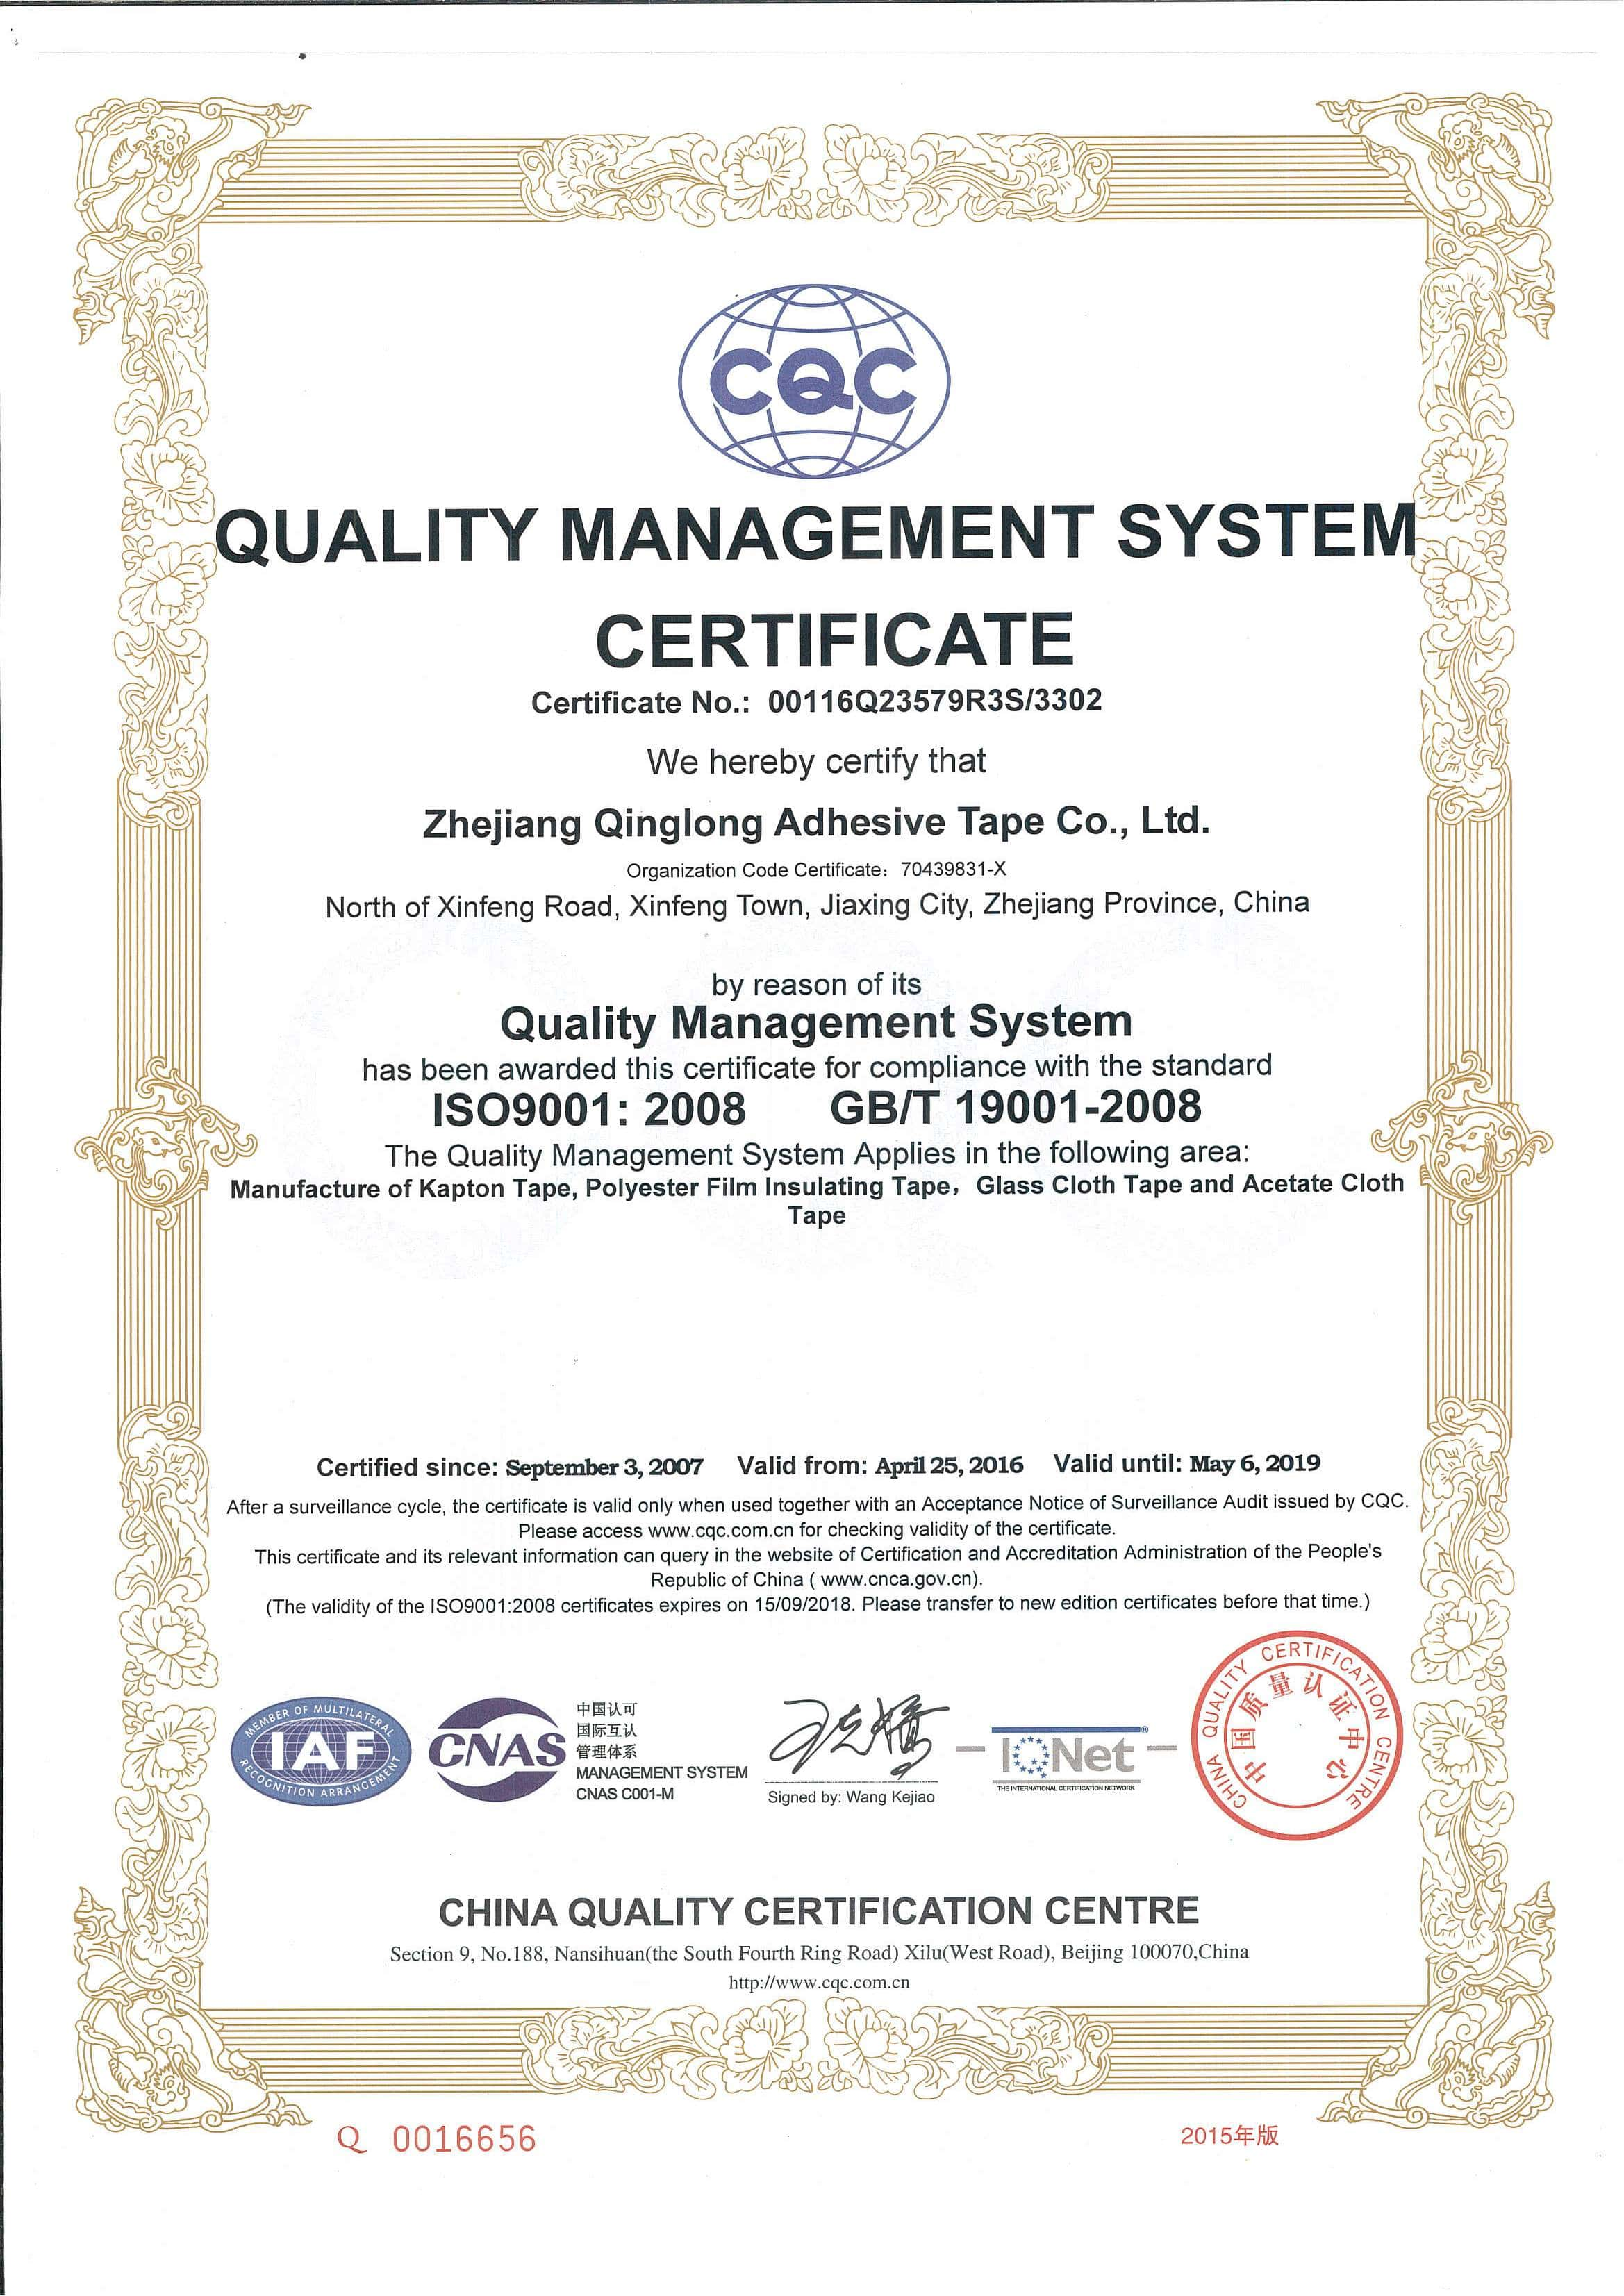 The company passed ISO9001 and ISO14001 certifications